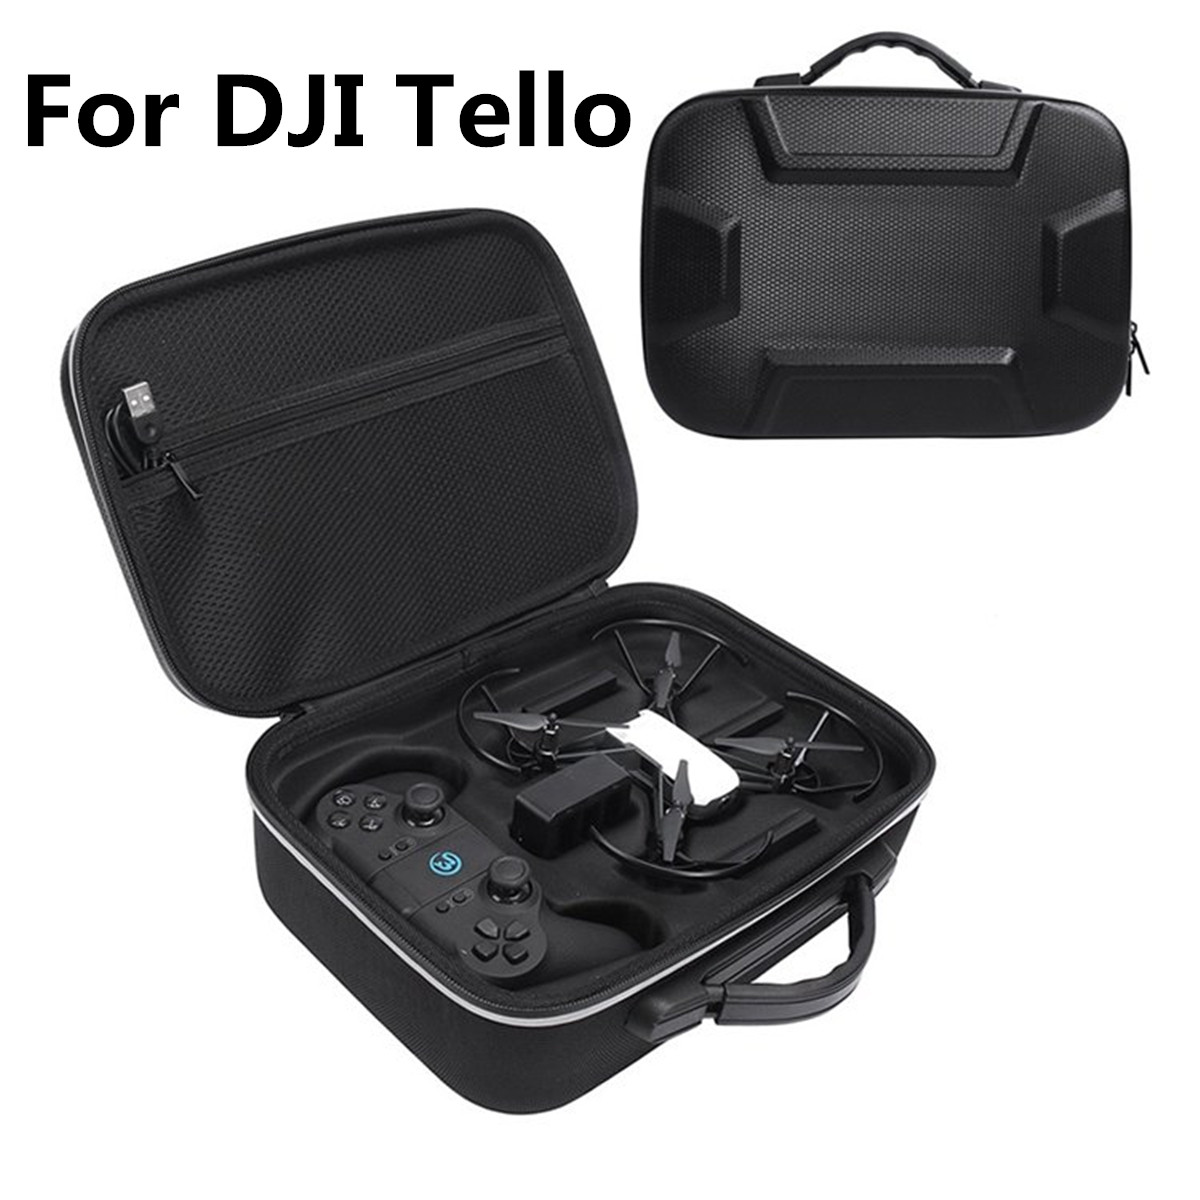 PU EVA Waterproof Travel Carry Bag For DJI Tello EDU Protective Storage Case For DJI Tello Drone Portable Handbag Box Black